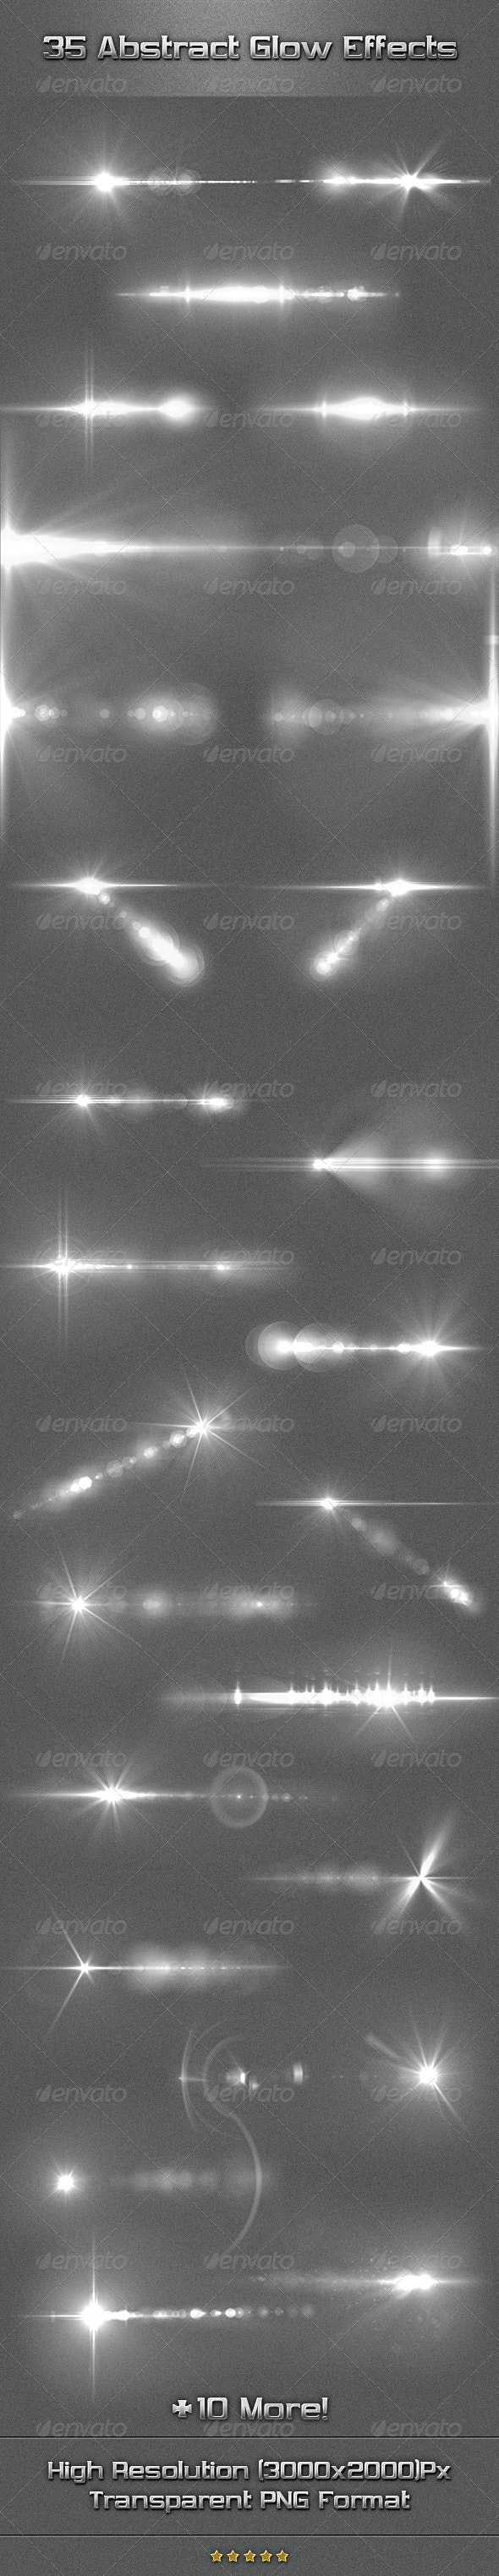 35 Abstract Glow Effects - Miscellaneous Graphics